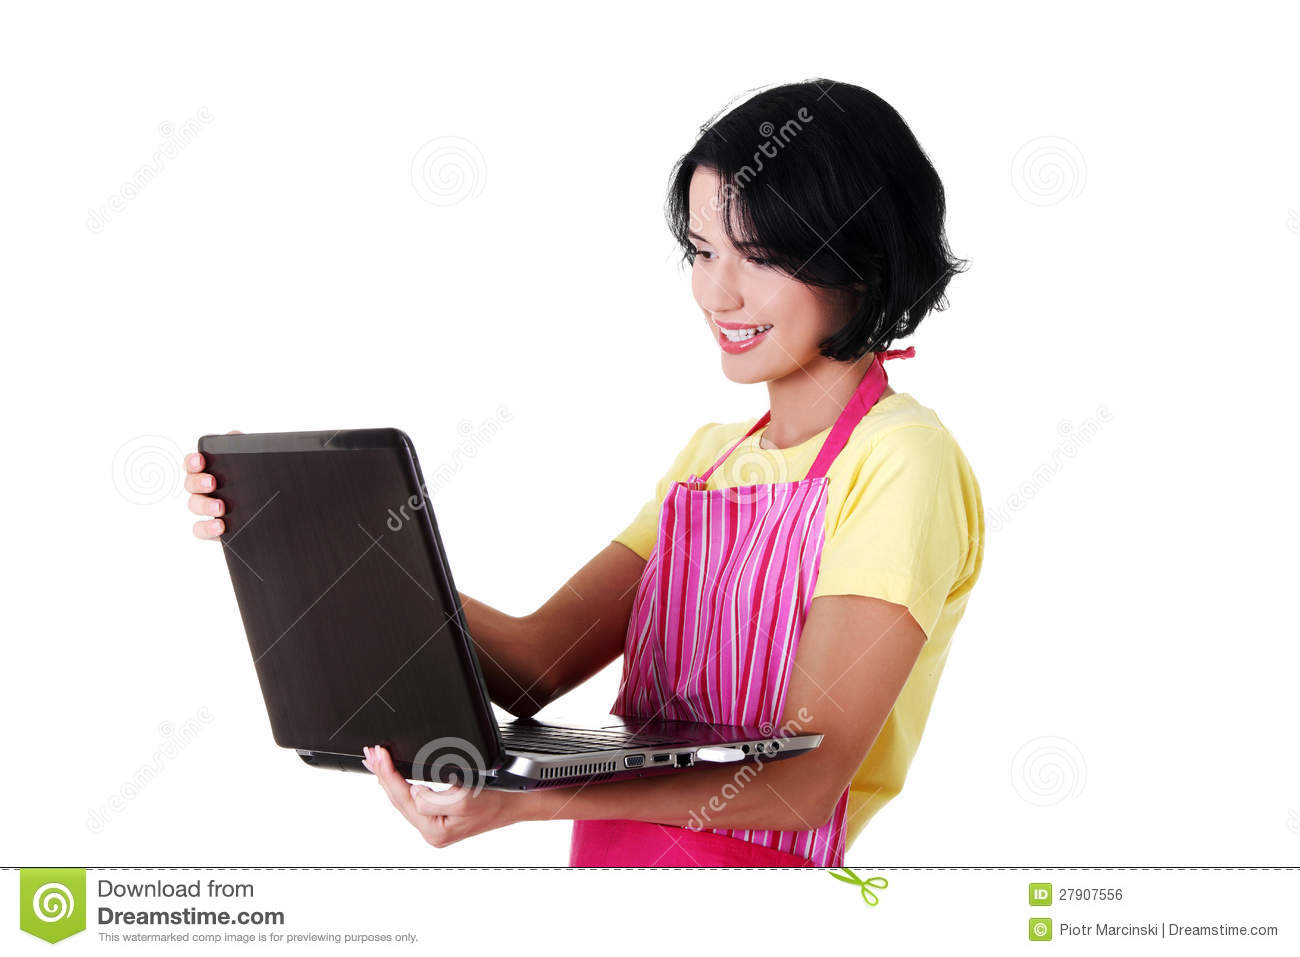 Modern housewife or female worker royalty free stock image for Modern housewife